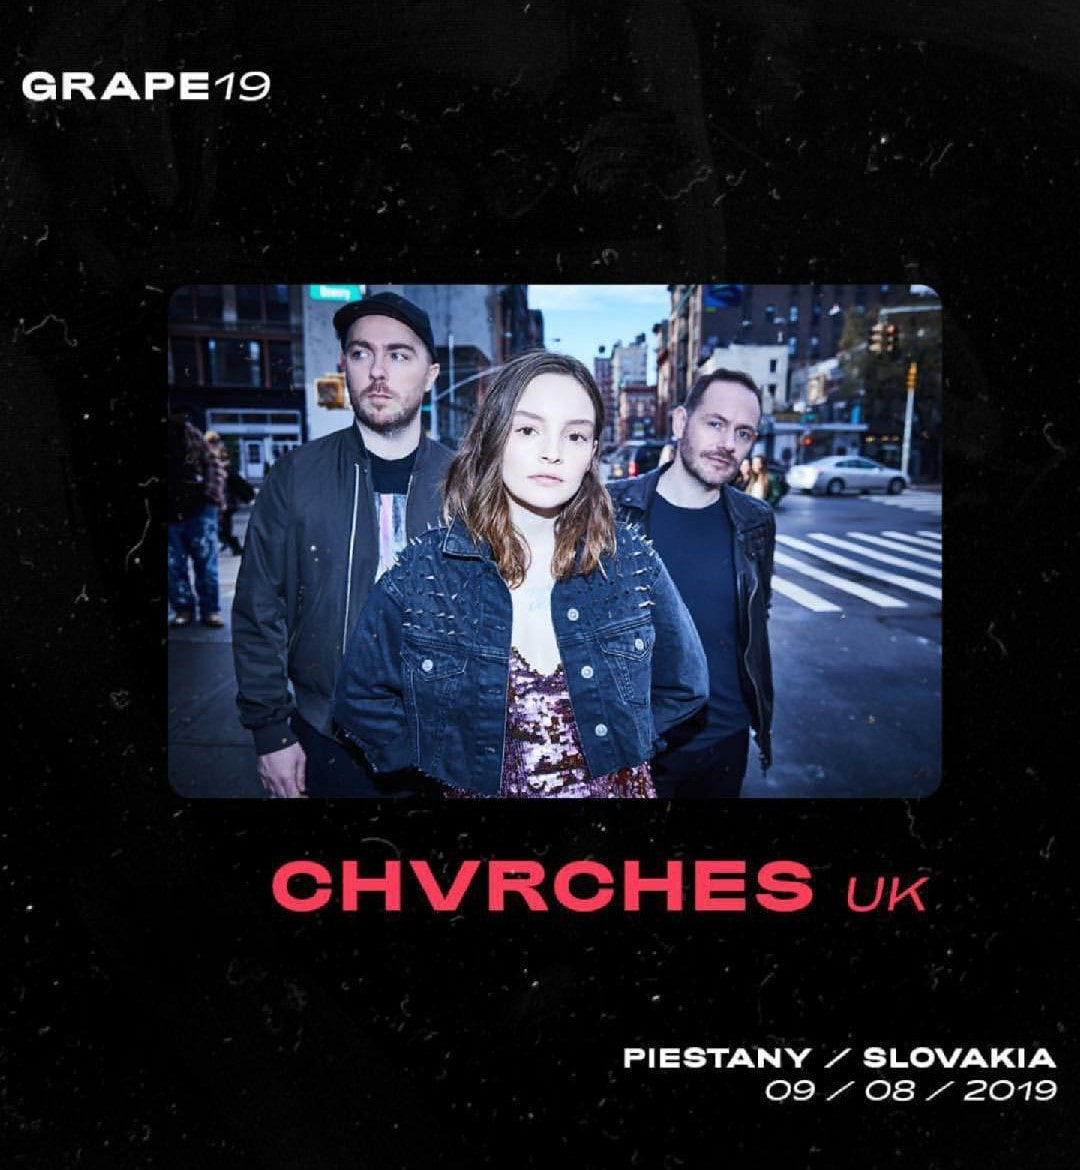 CHVRCHES Are Headed to Slovakia for Grape Festival Next Year